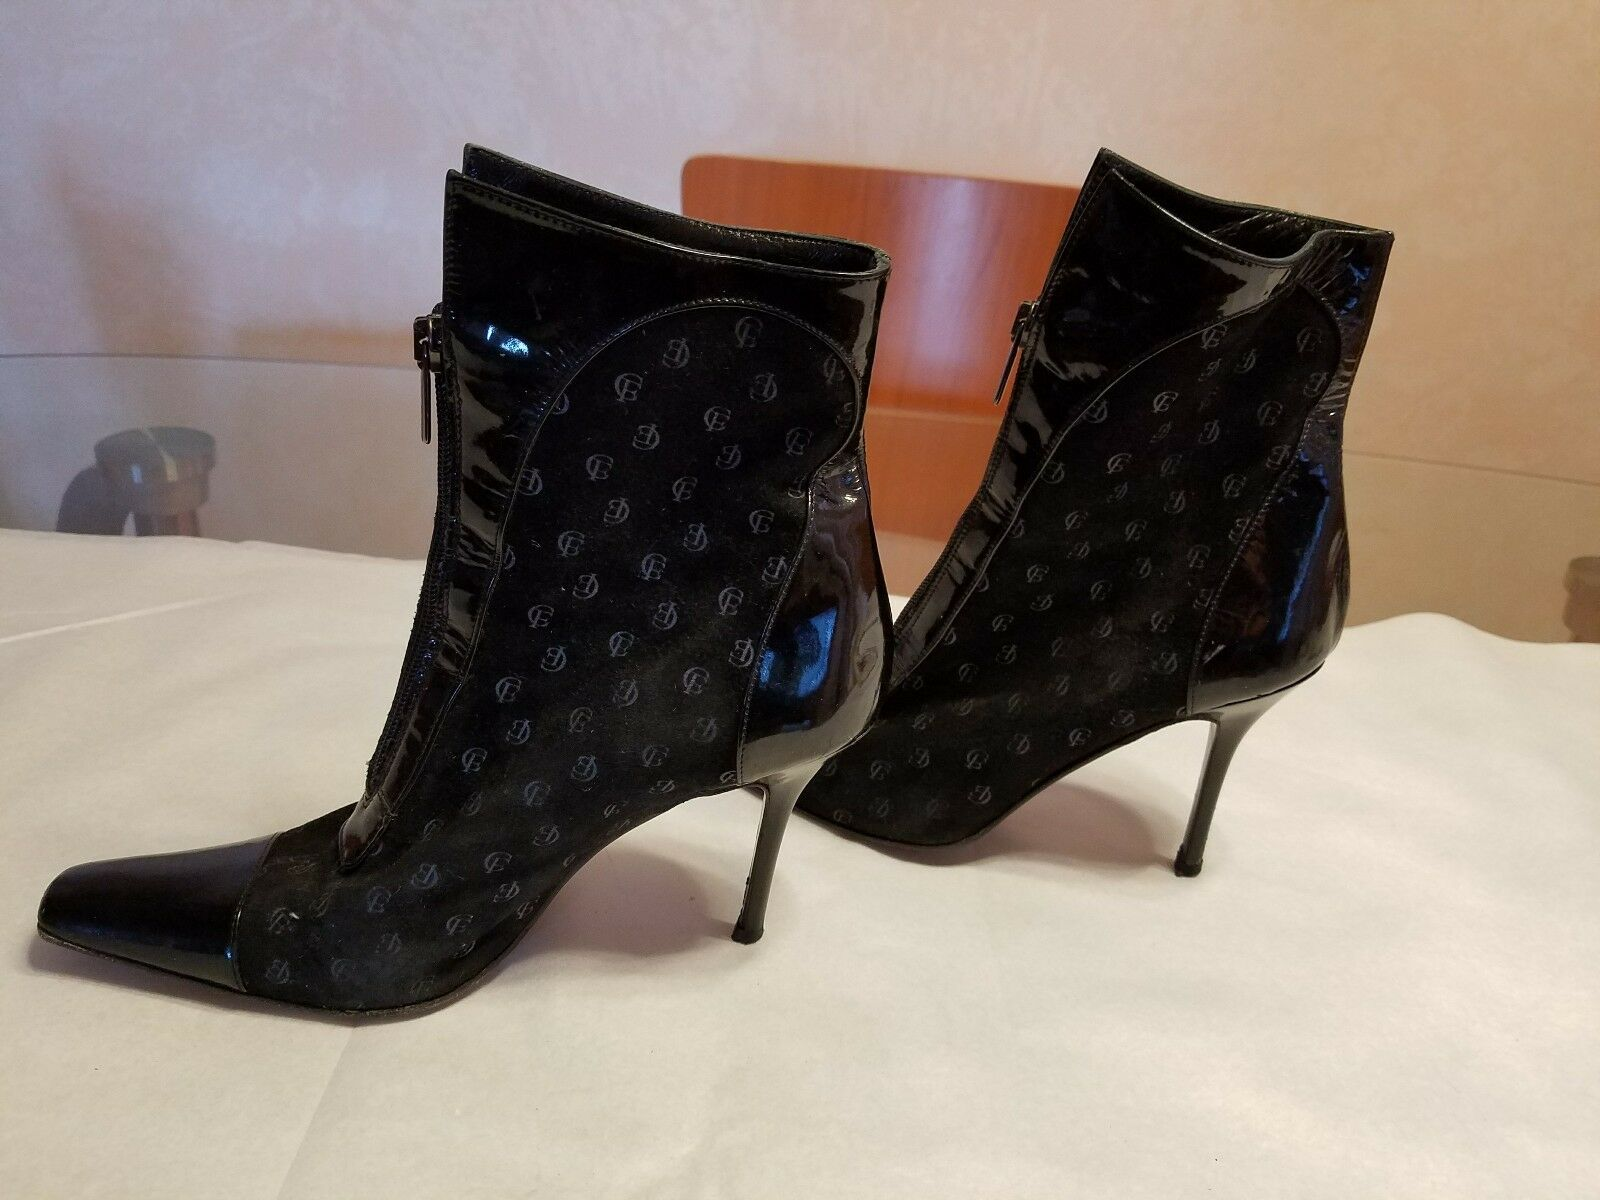 Claudio Fracassa    Black Patent leather and Suede Booties. Italy 18bd56